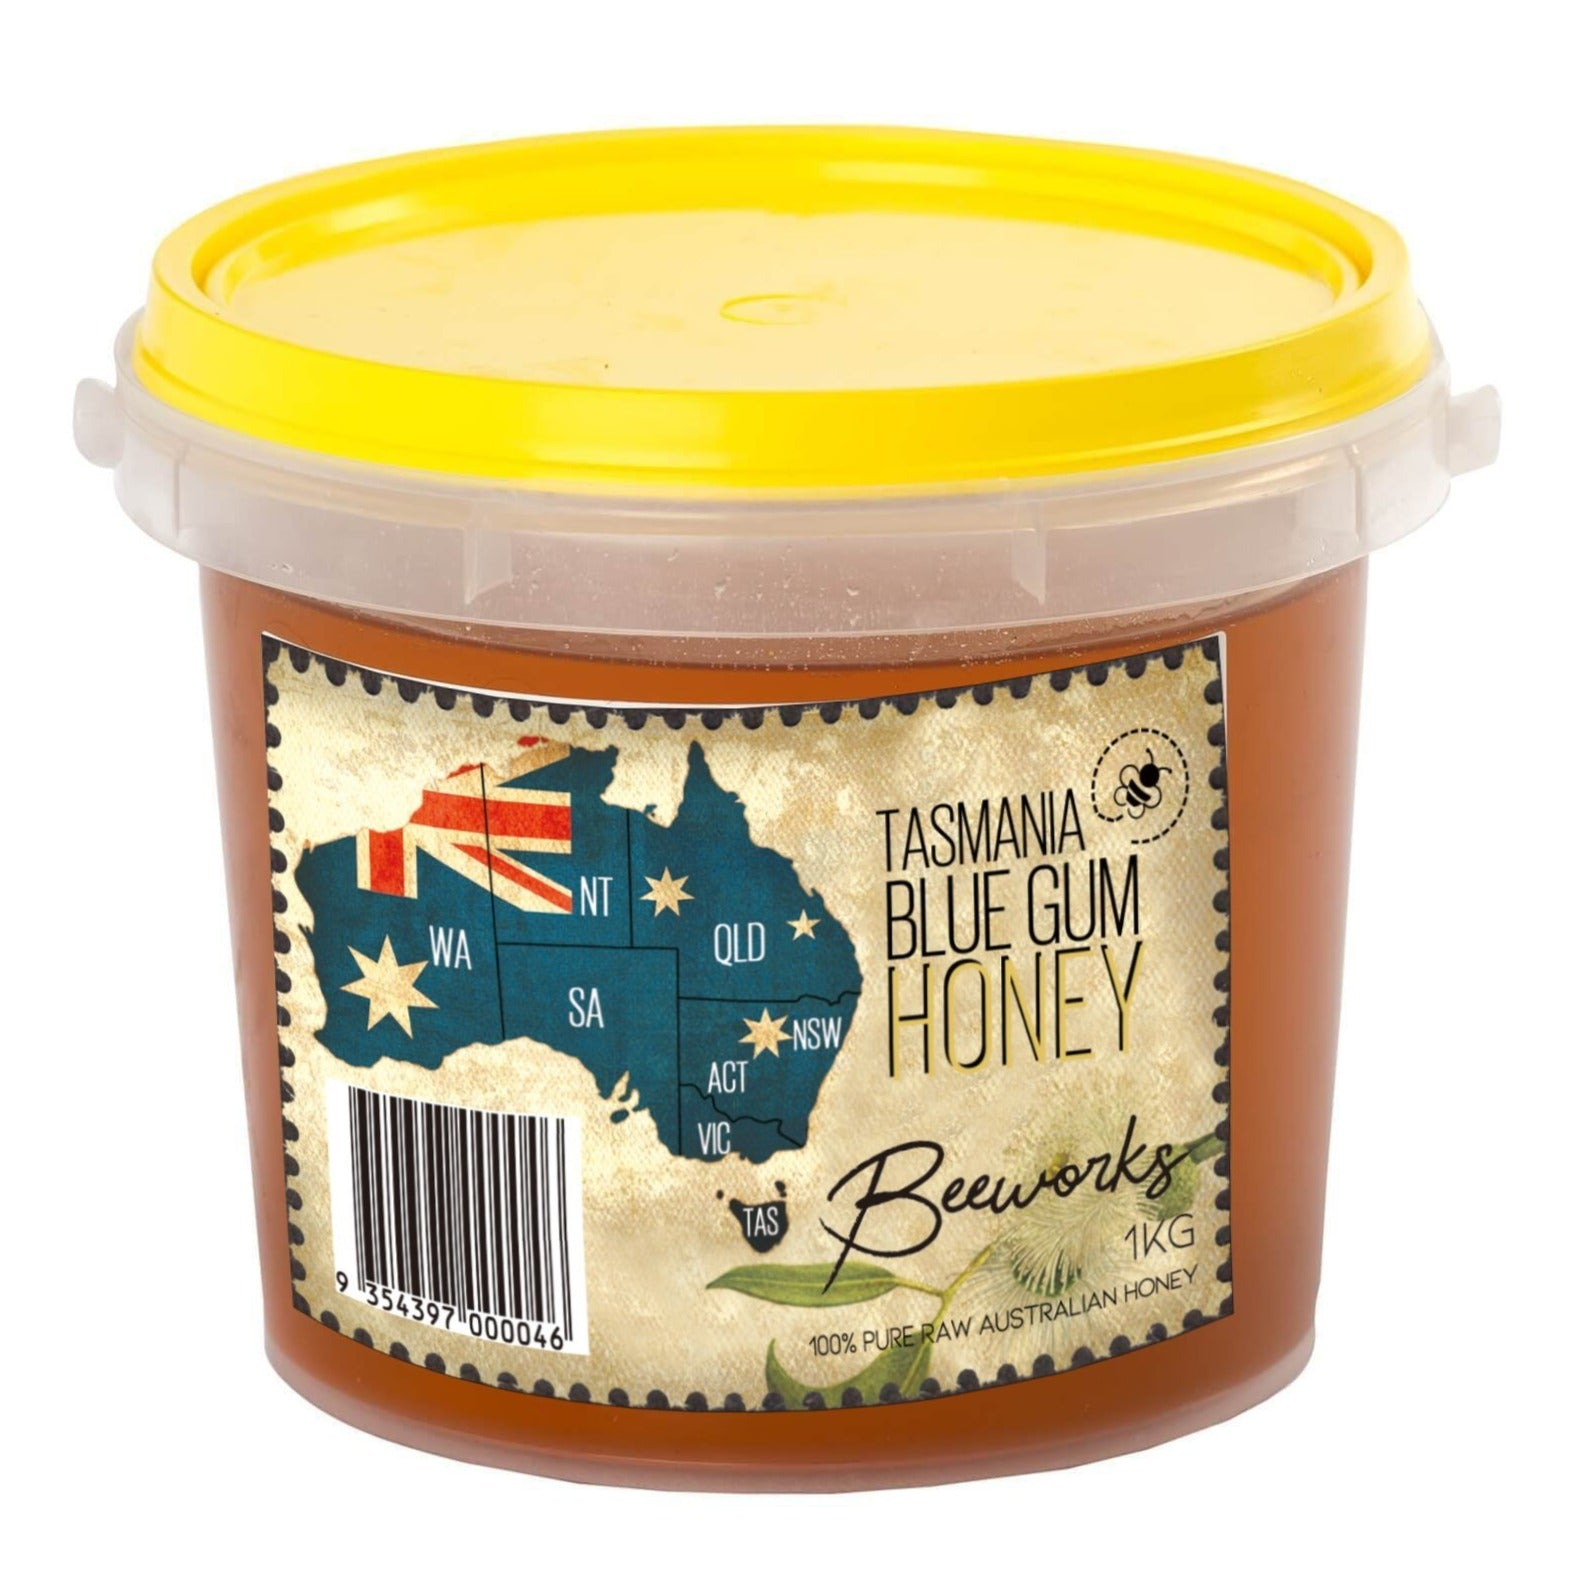 Blue Gum Honey Tub (1kg)